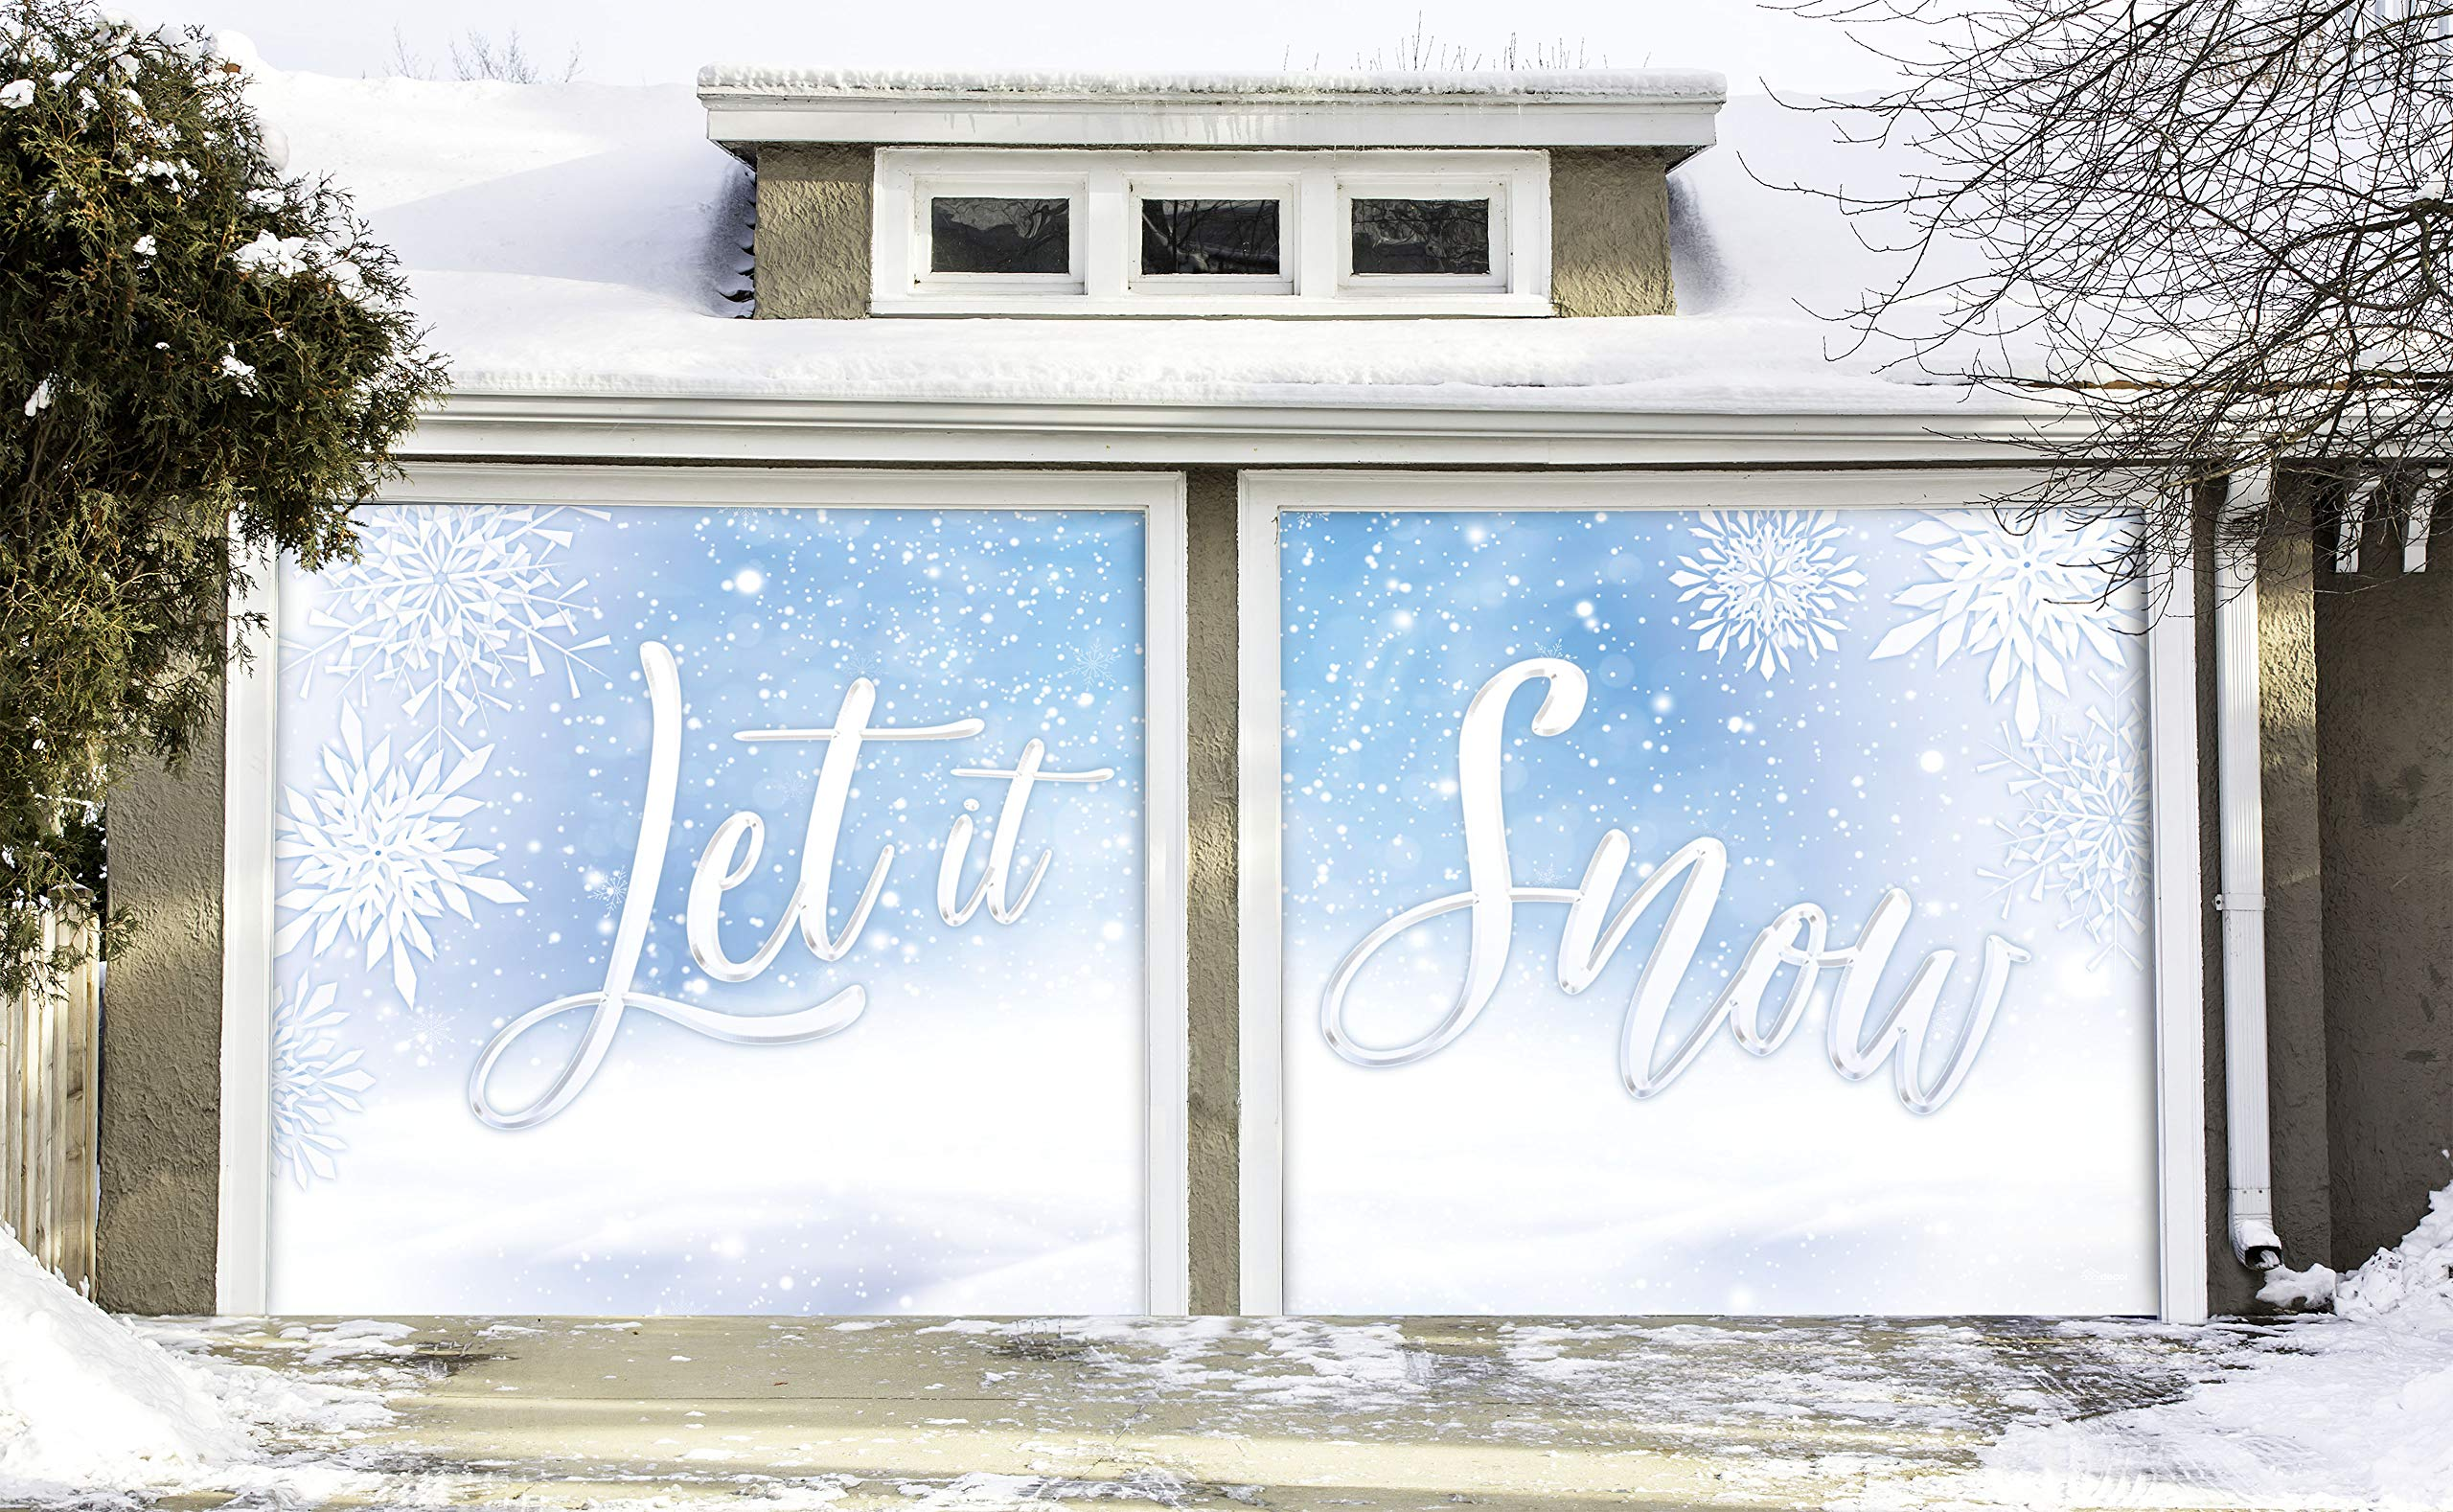 Victory Corps Let it Snow - Holiday Garage Door Banner Mural Sign Décor 7'x 8' Split Car Garage - The Original Holiday Garage Door Banner Decor